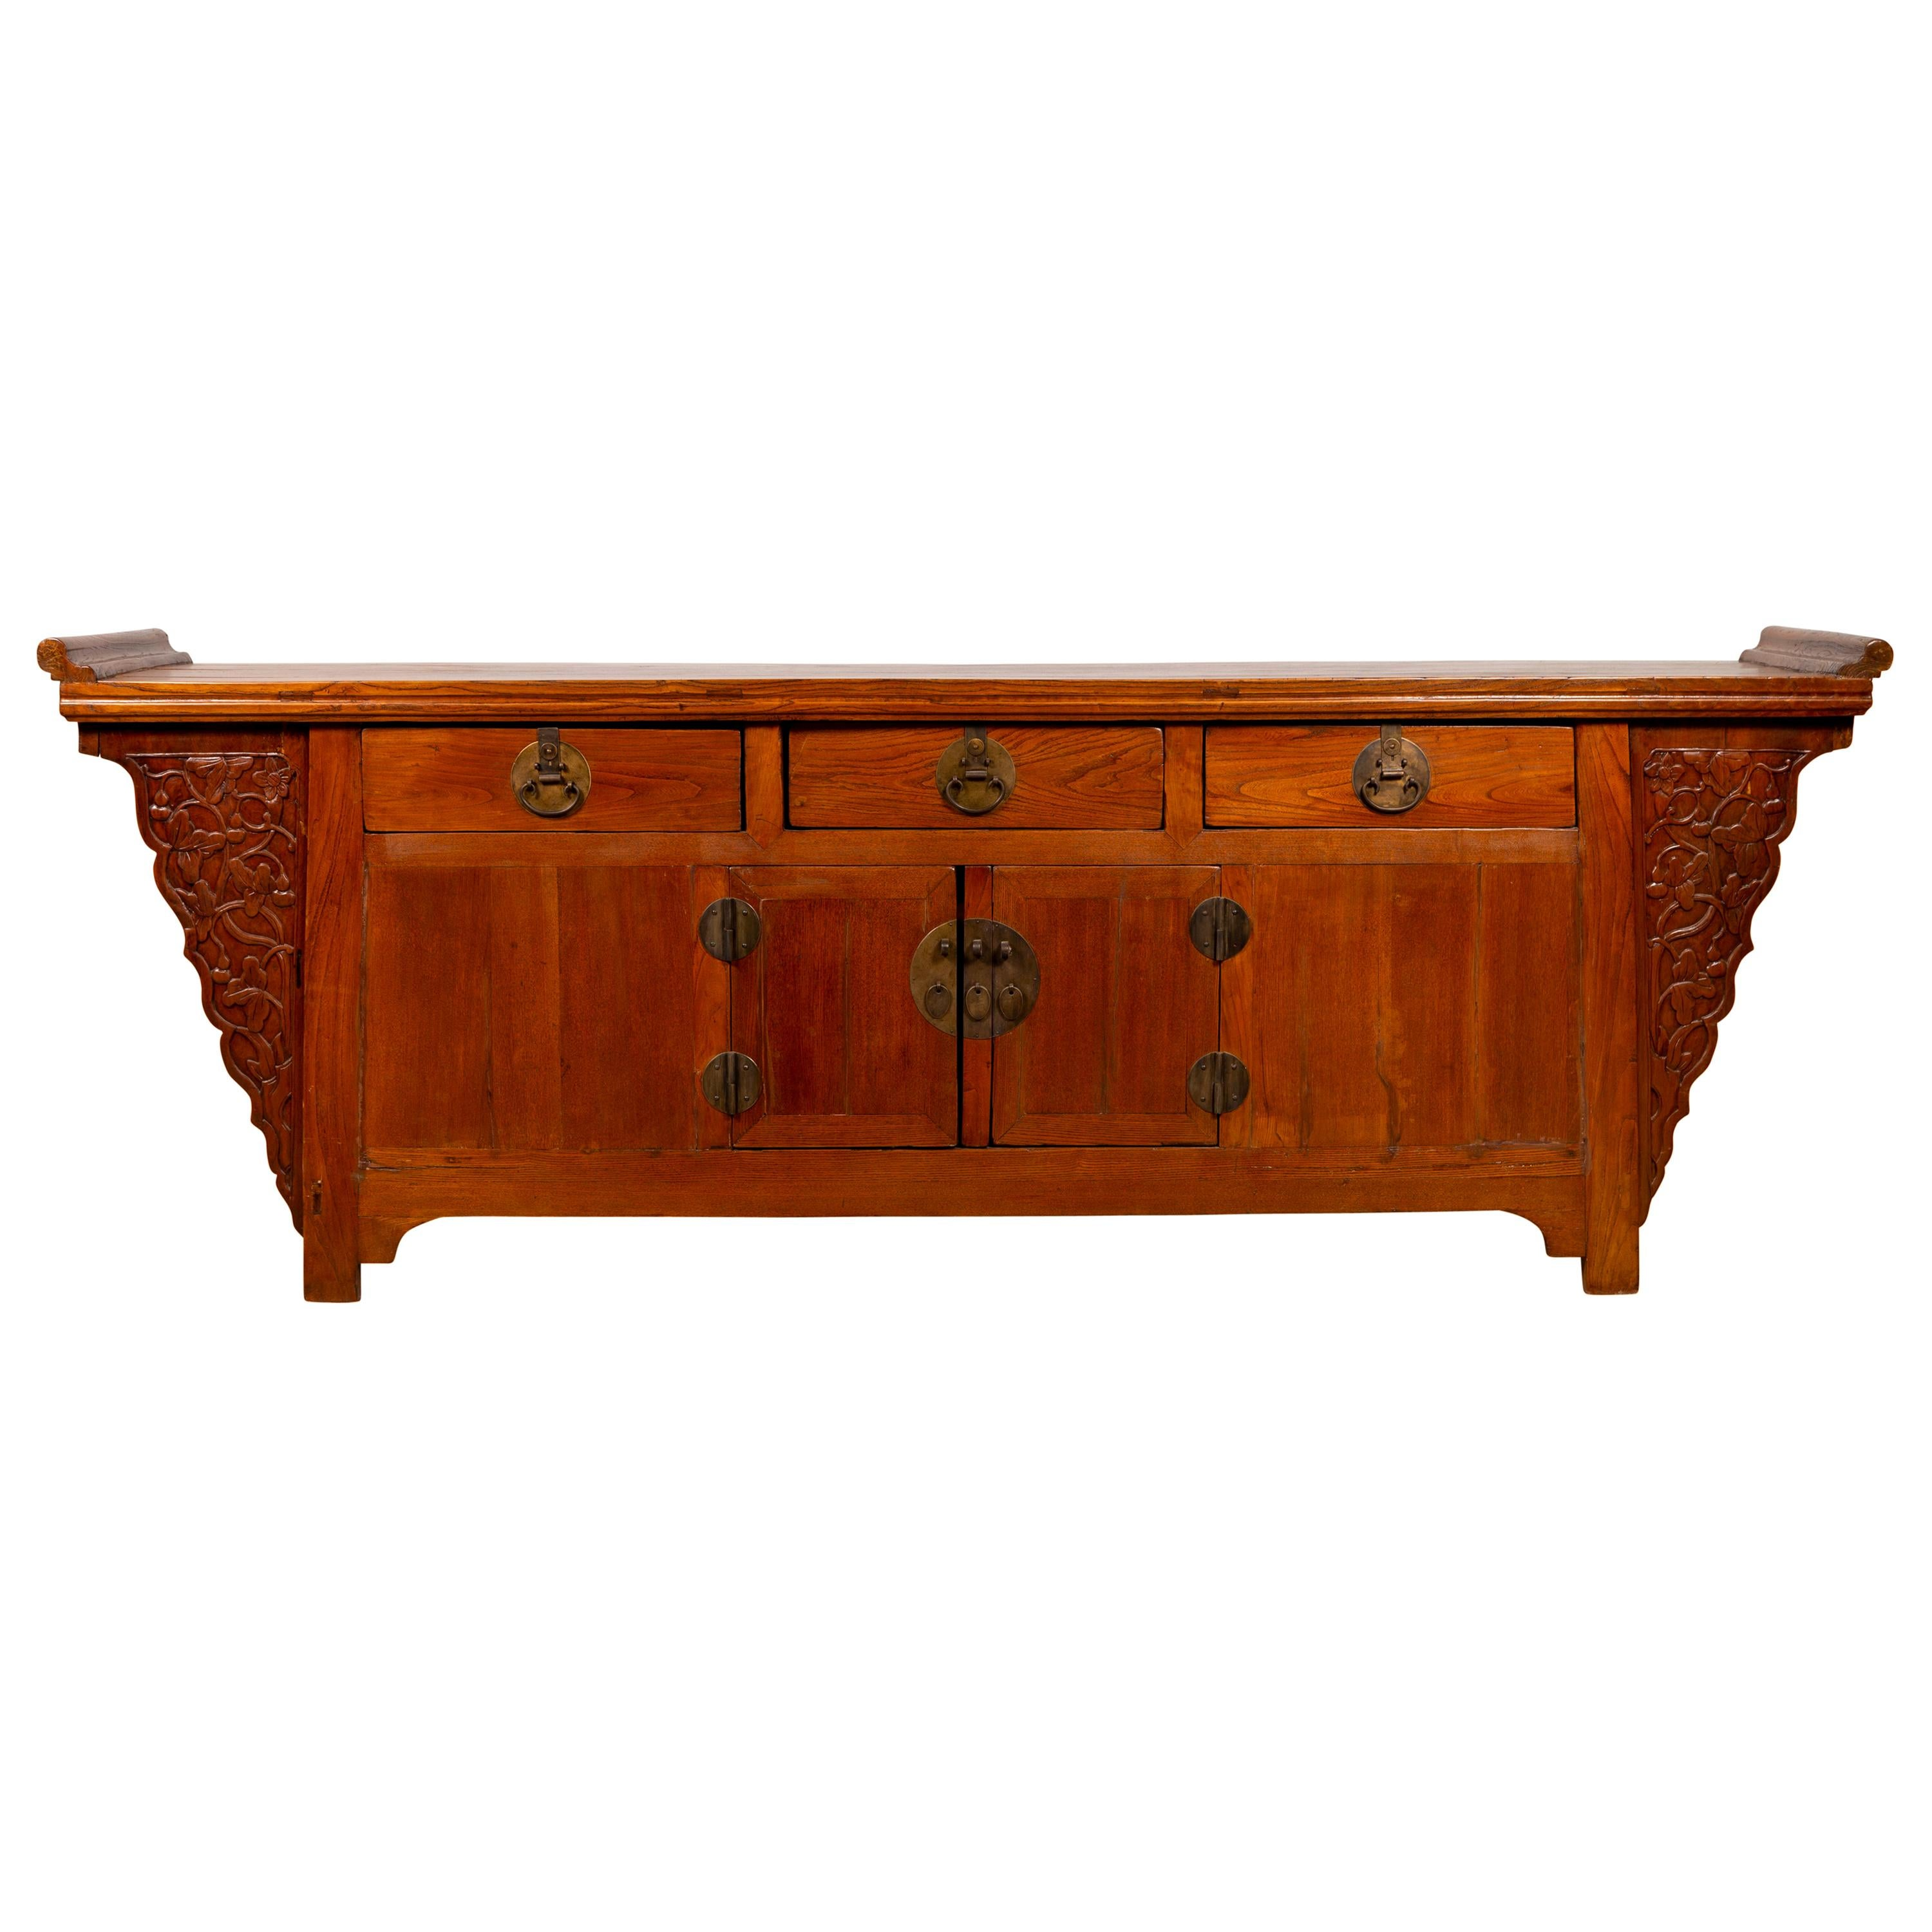 Ming Dynasty Style Altar Cabinet with Everted Flanges and Carved Spandrels